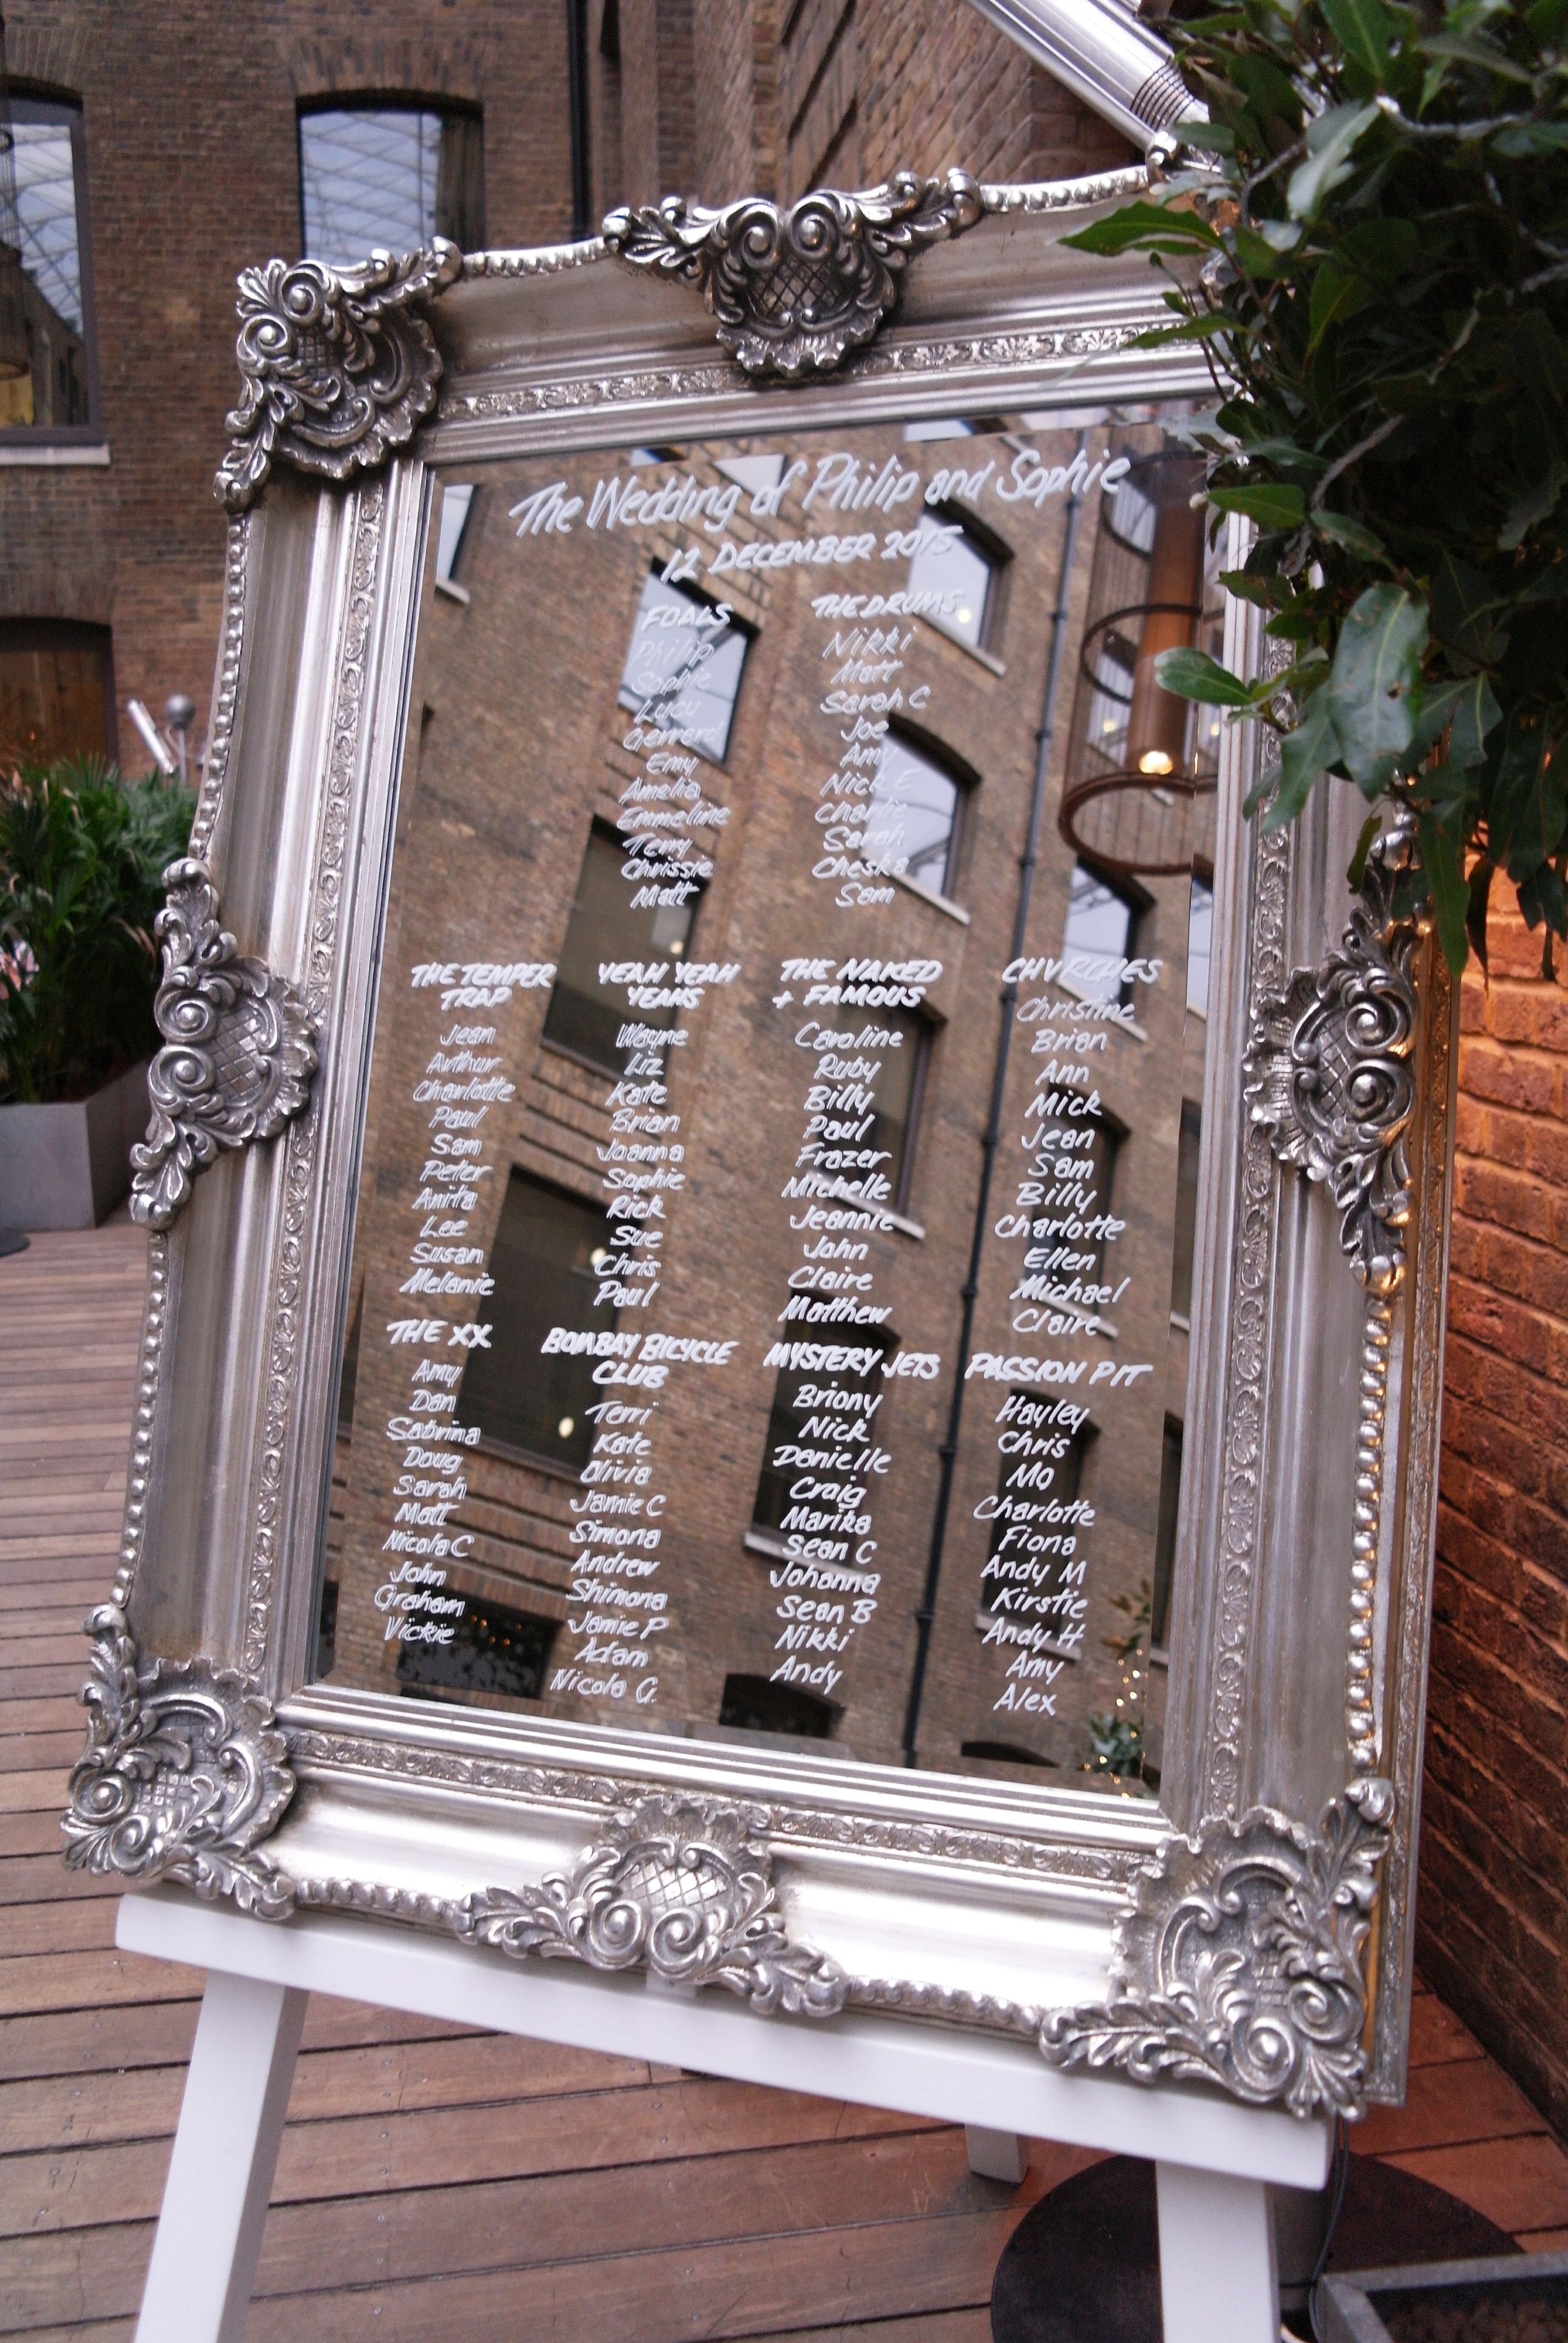 Large mirror on white easel with hand written table plan by stressfreehire venuetransformers also www rh pinterest